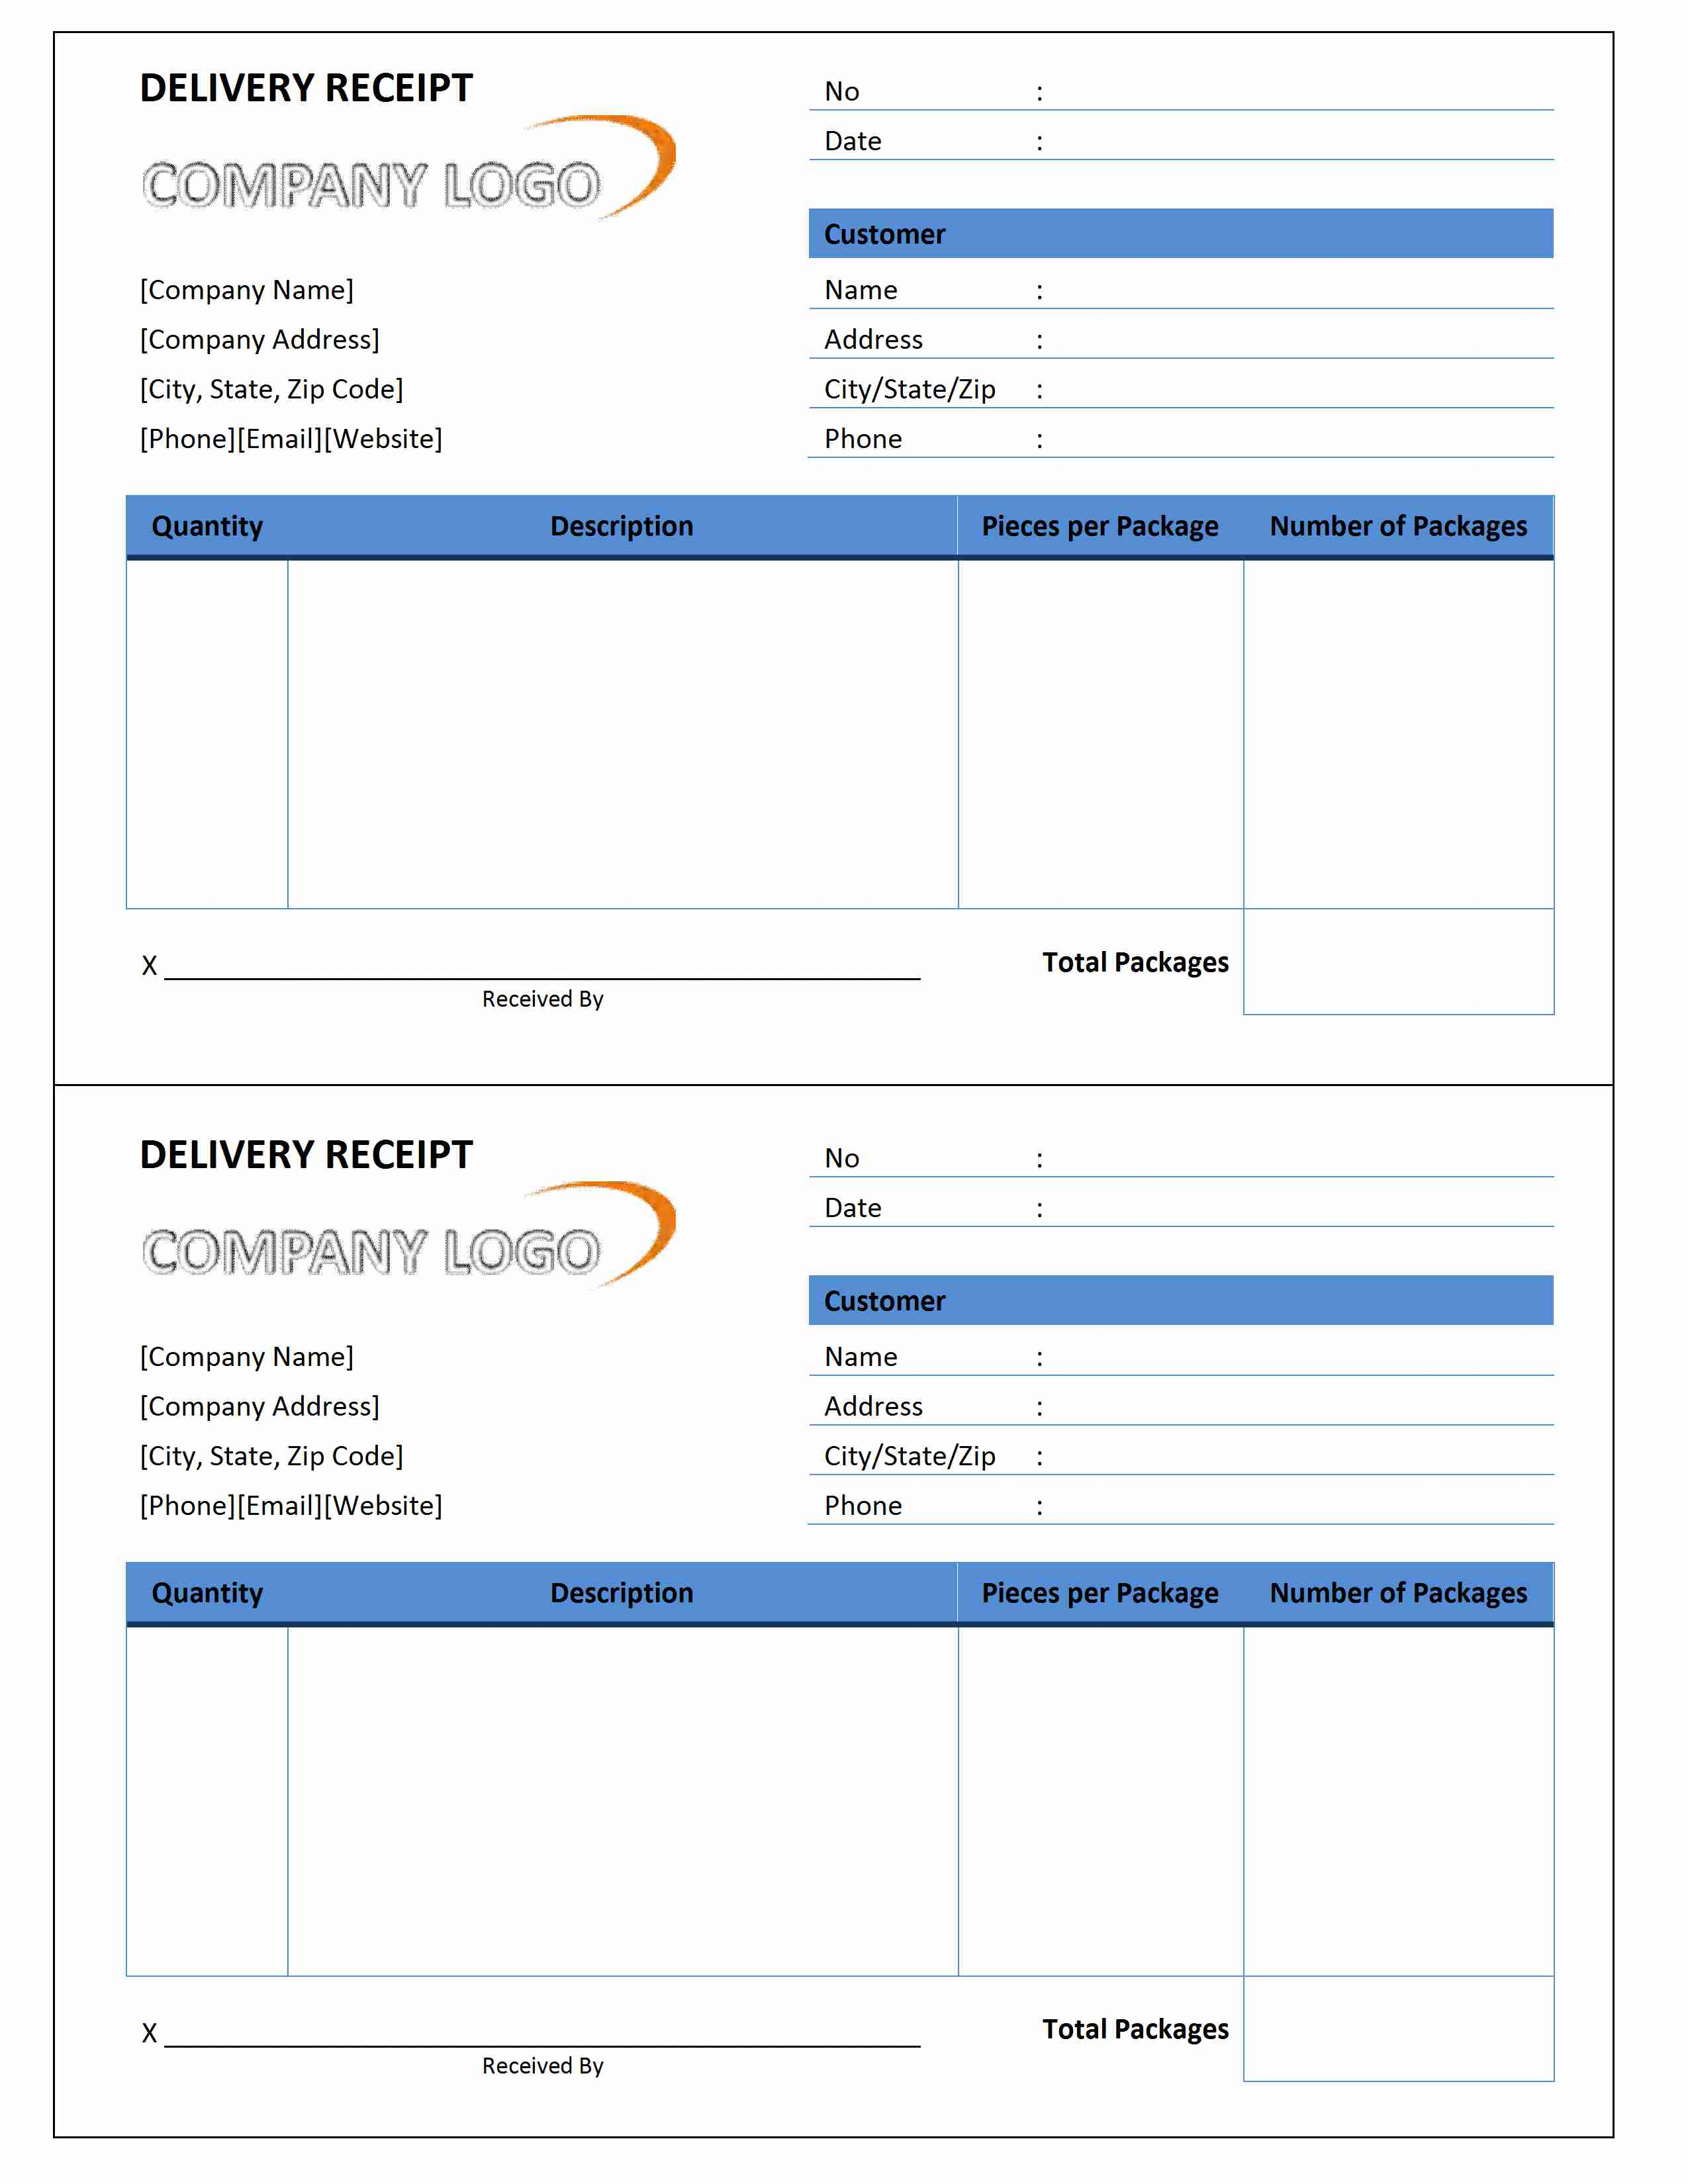 rent receipt wordtemplates net rental invoice middot delivery receipt